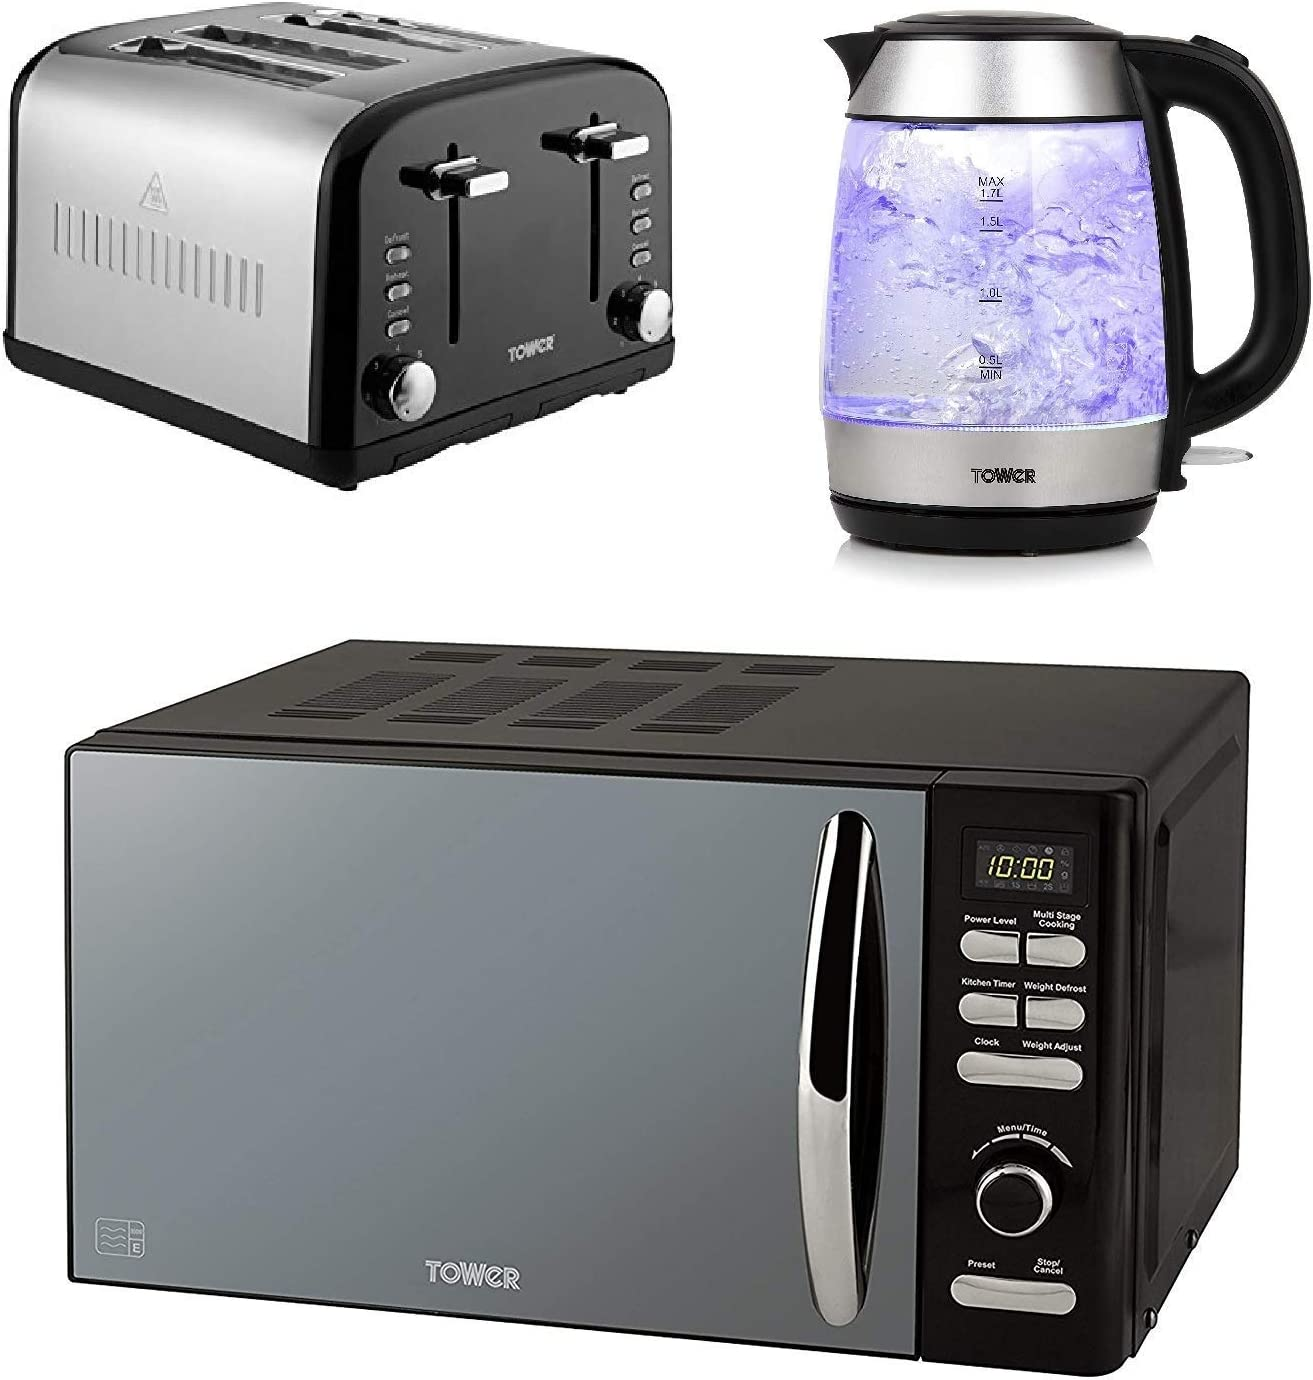 Tower Infinity T24019 Mircowave with Kettle and 4 Slice Toaster Set Black